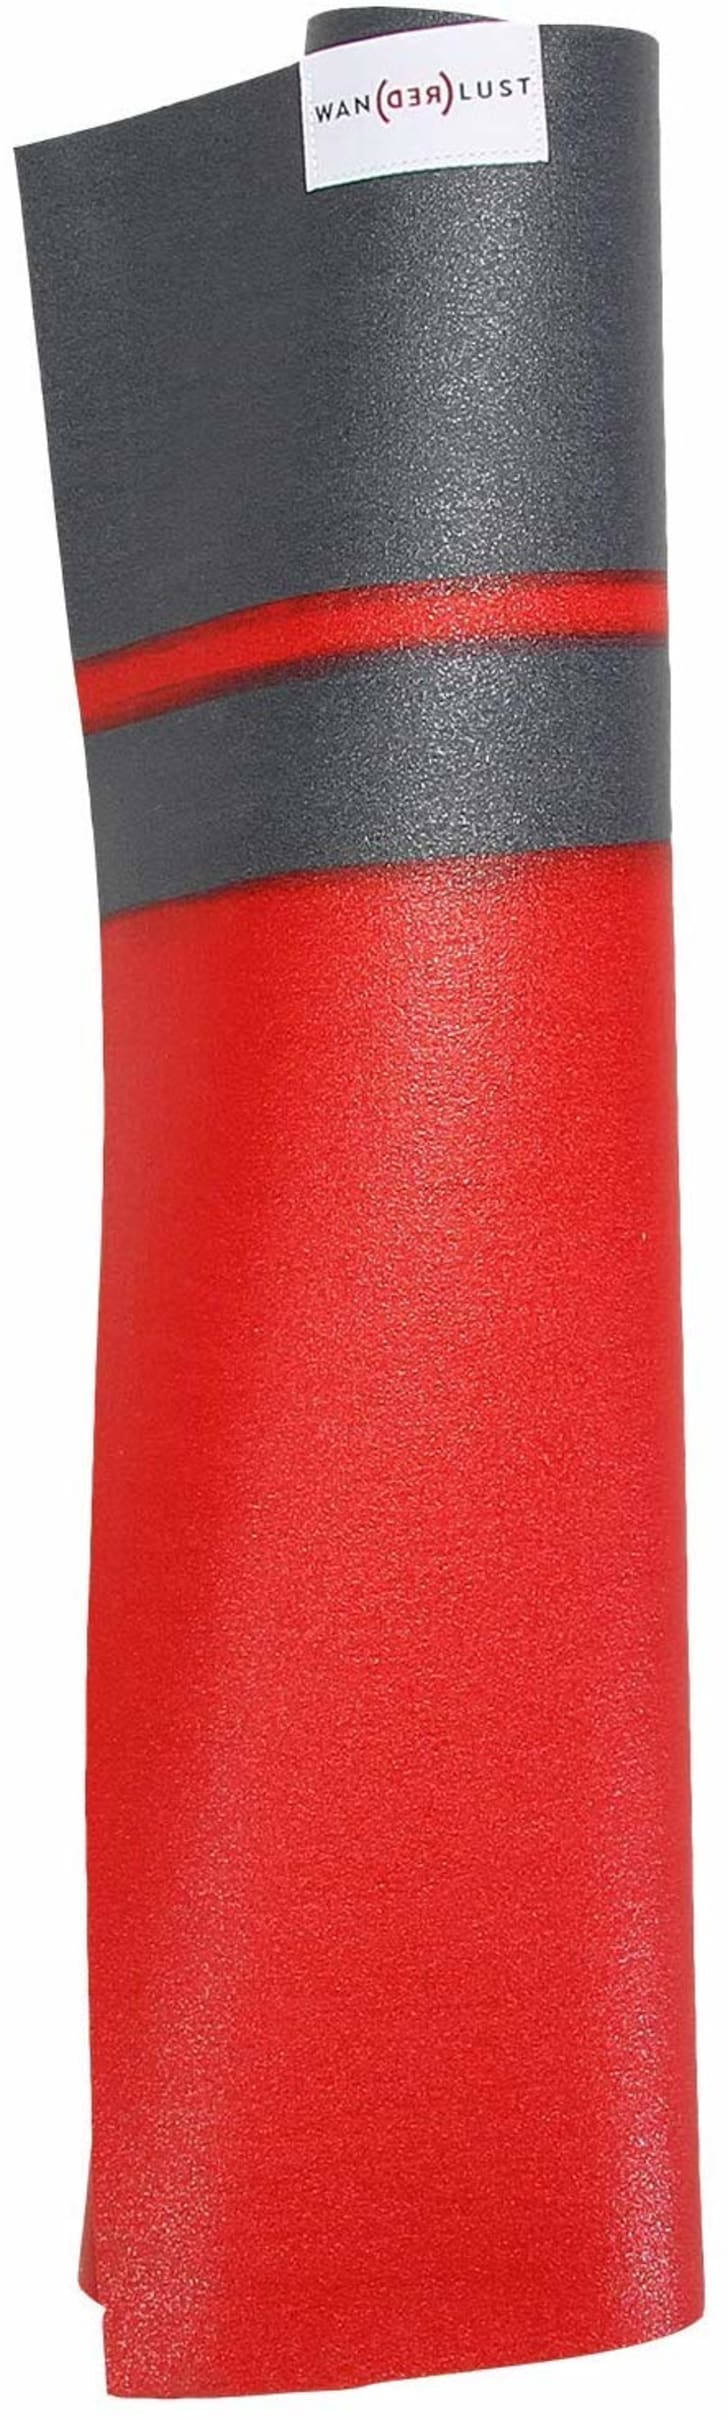 Image of a rolled-up red yoga mat with two gray stripes near the top.